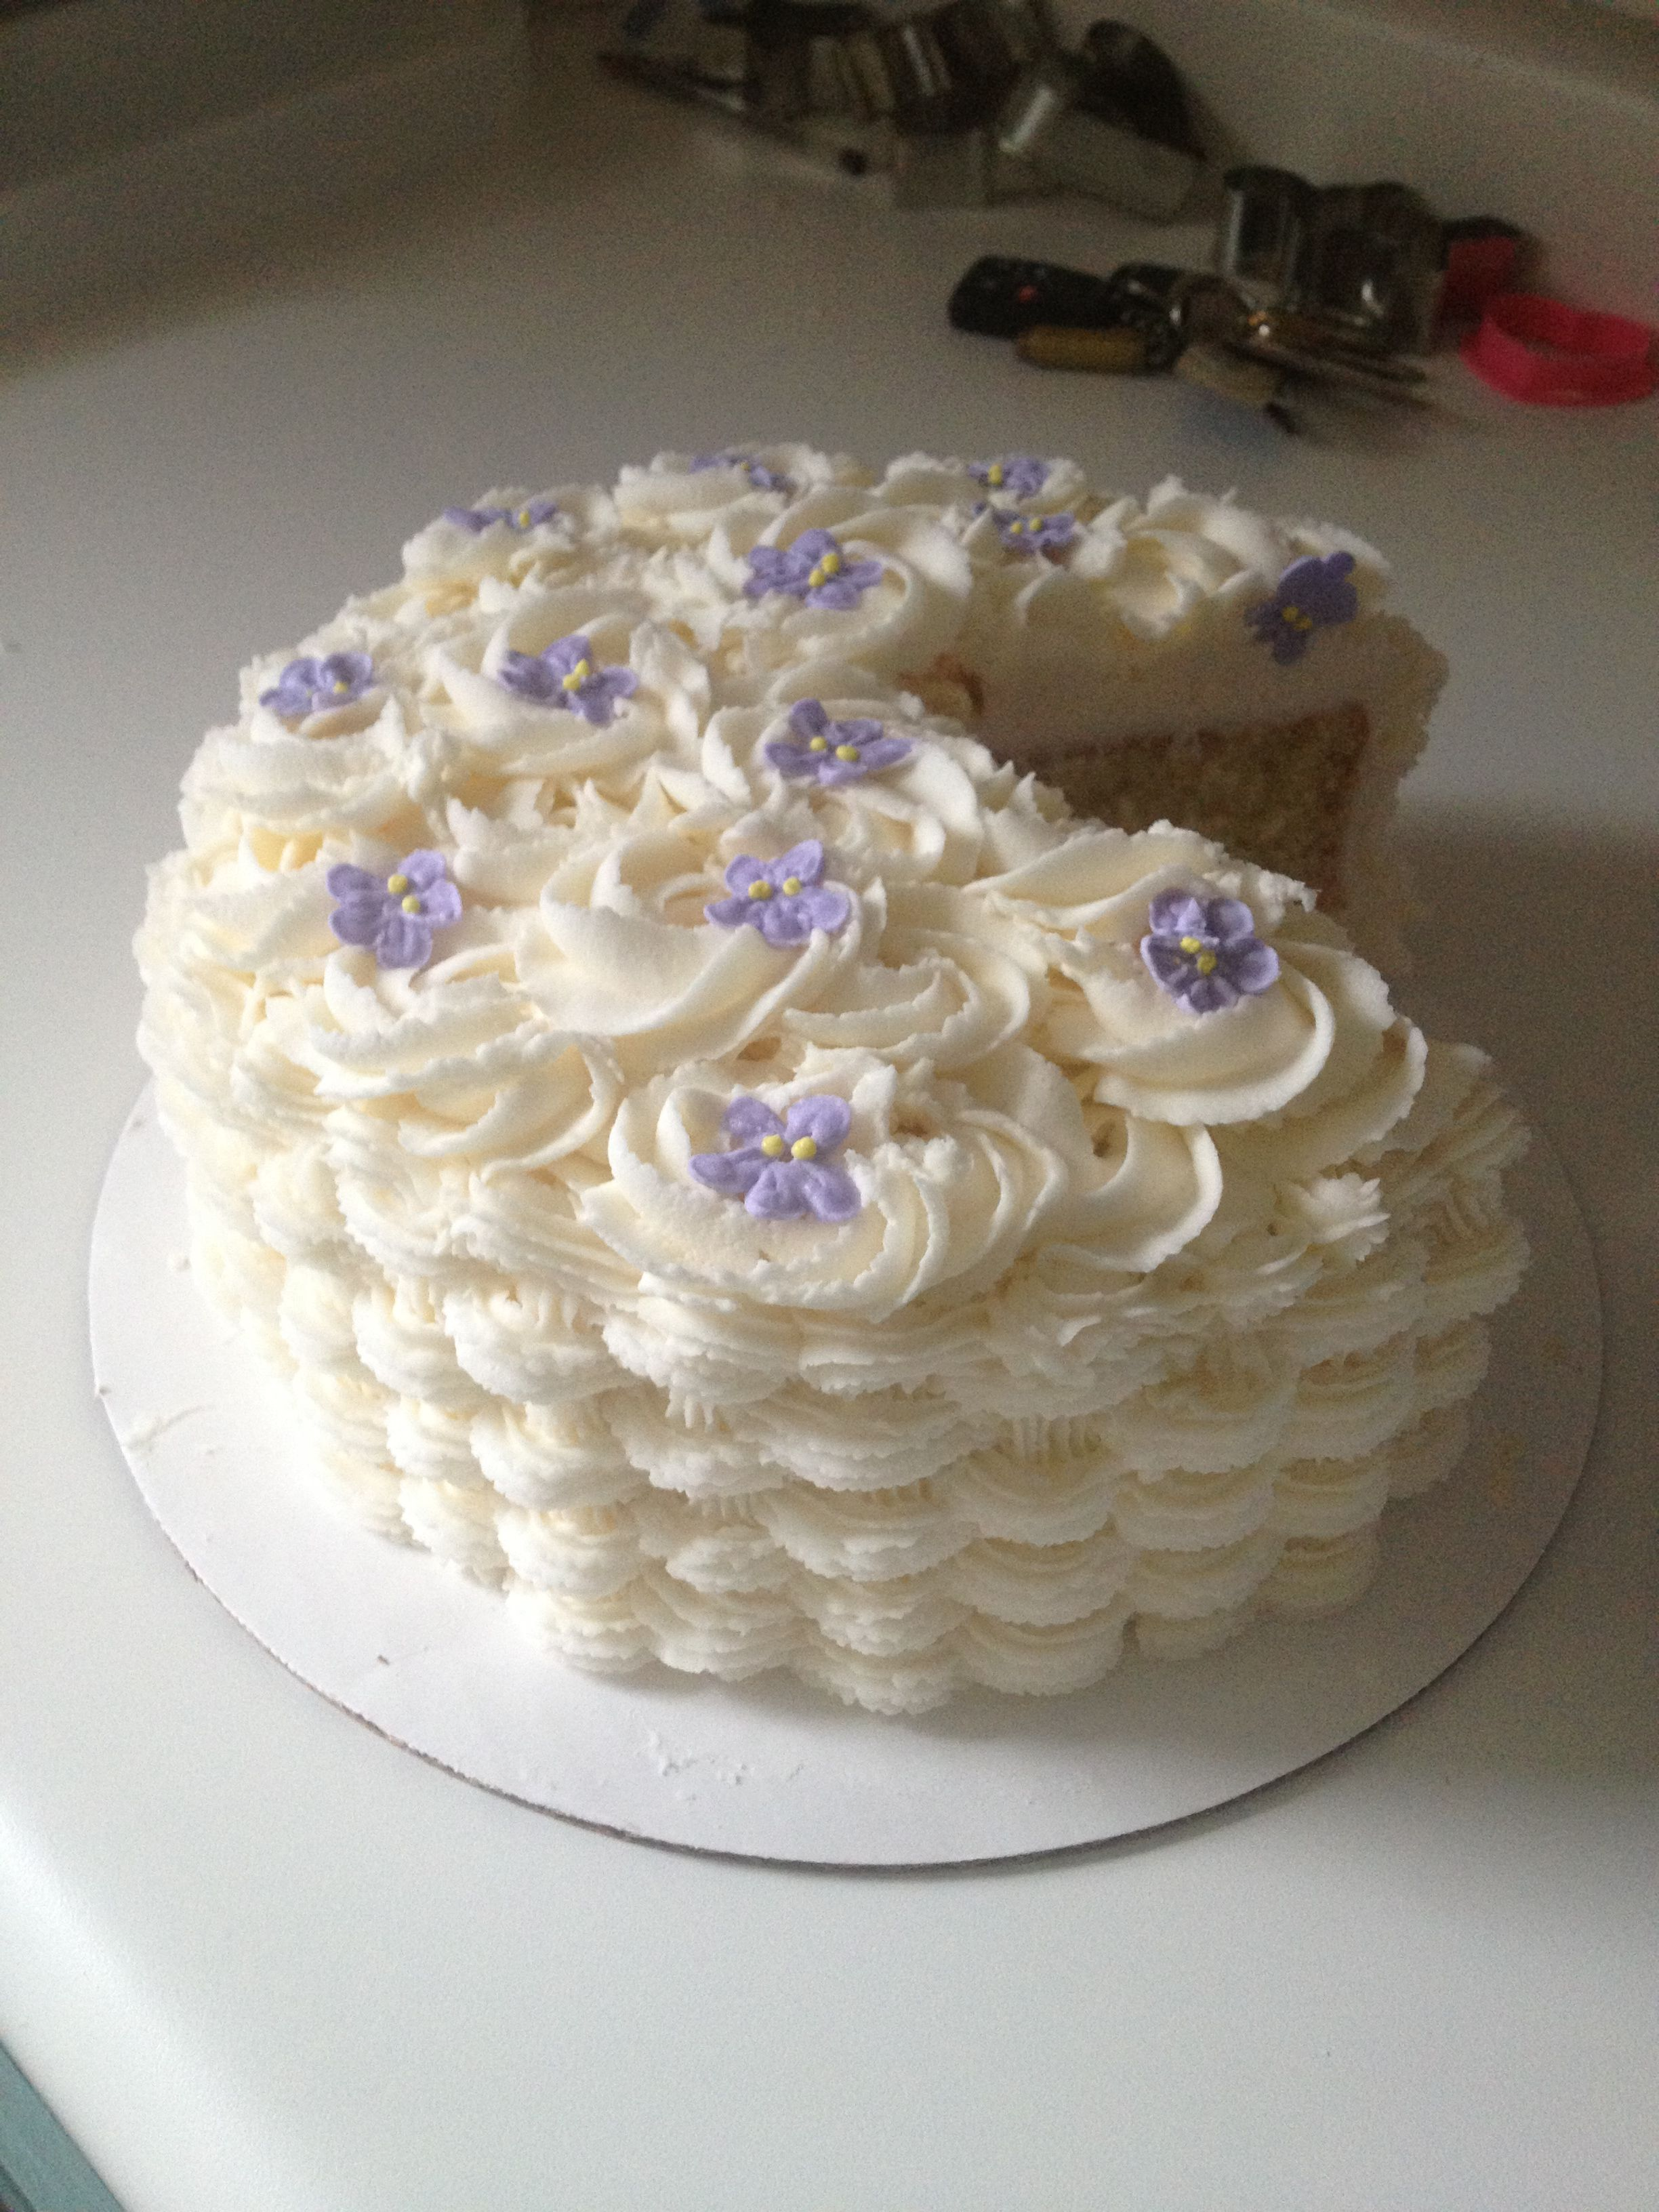 My first basket weave cake with rosettes and violets ...